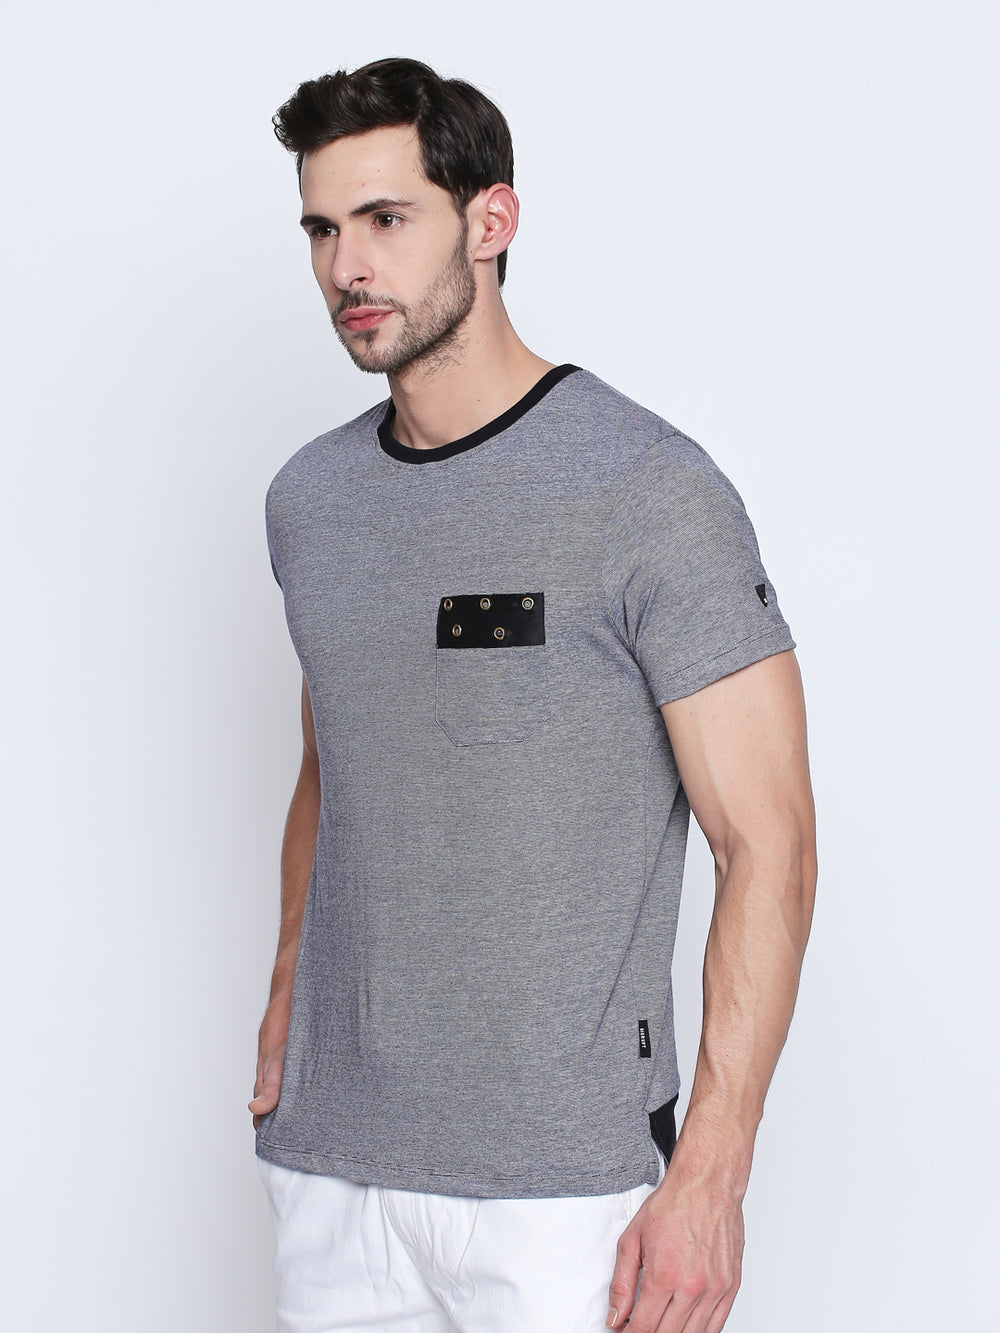 Black Detailed Slate Grey Cotton T-Shirt